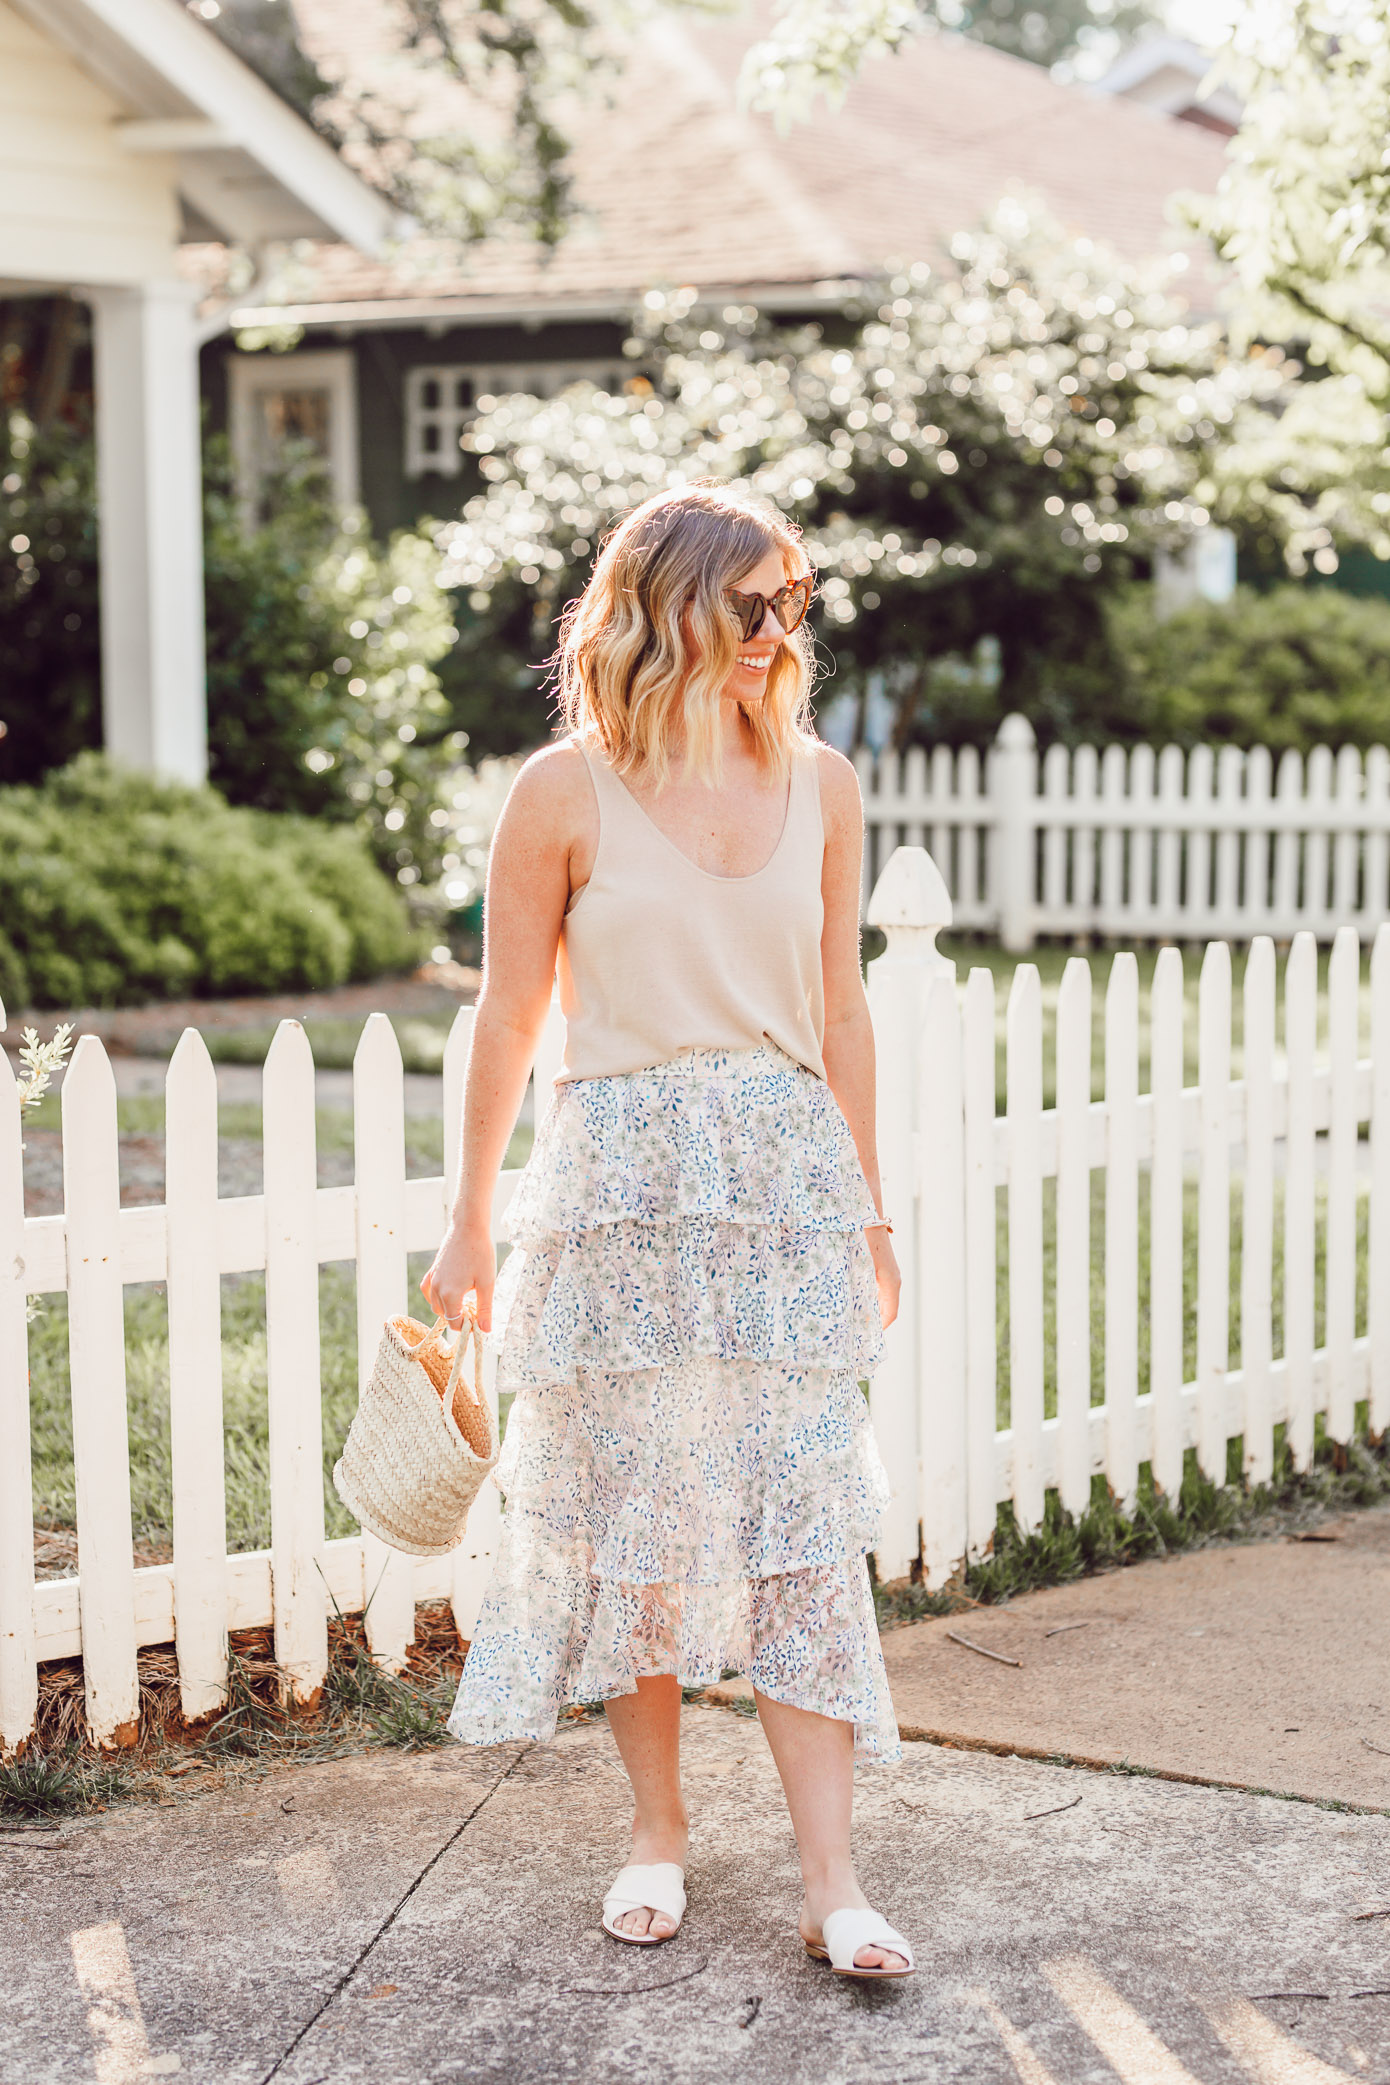 How to Casually Style a Midi Skirt this Summer | Casual Midi Skirt, Floral Midi Skirt | Louella Reese